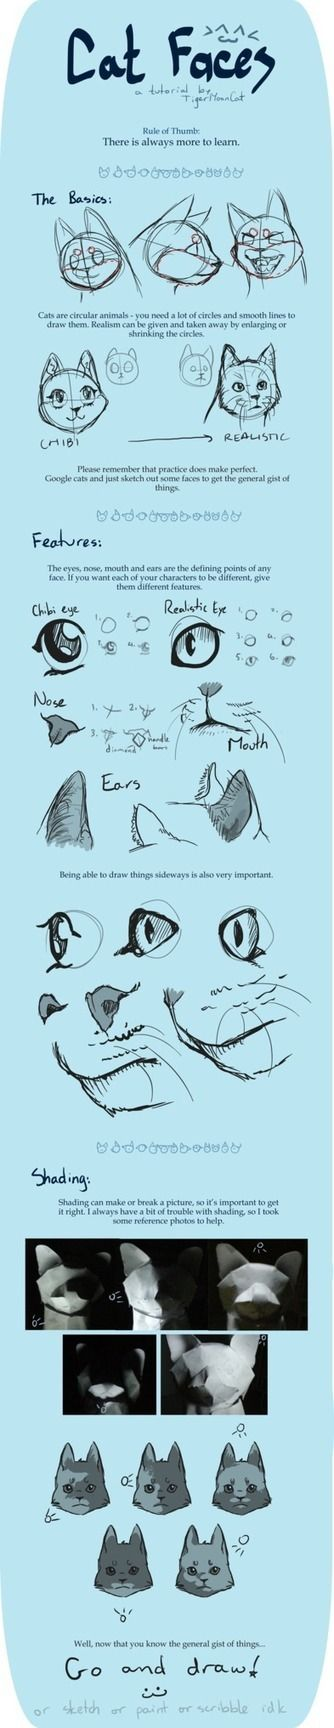 Cat Faces Drawing Reference Guide   Drawing References and Resources   Scoop.it